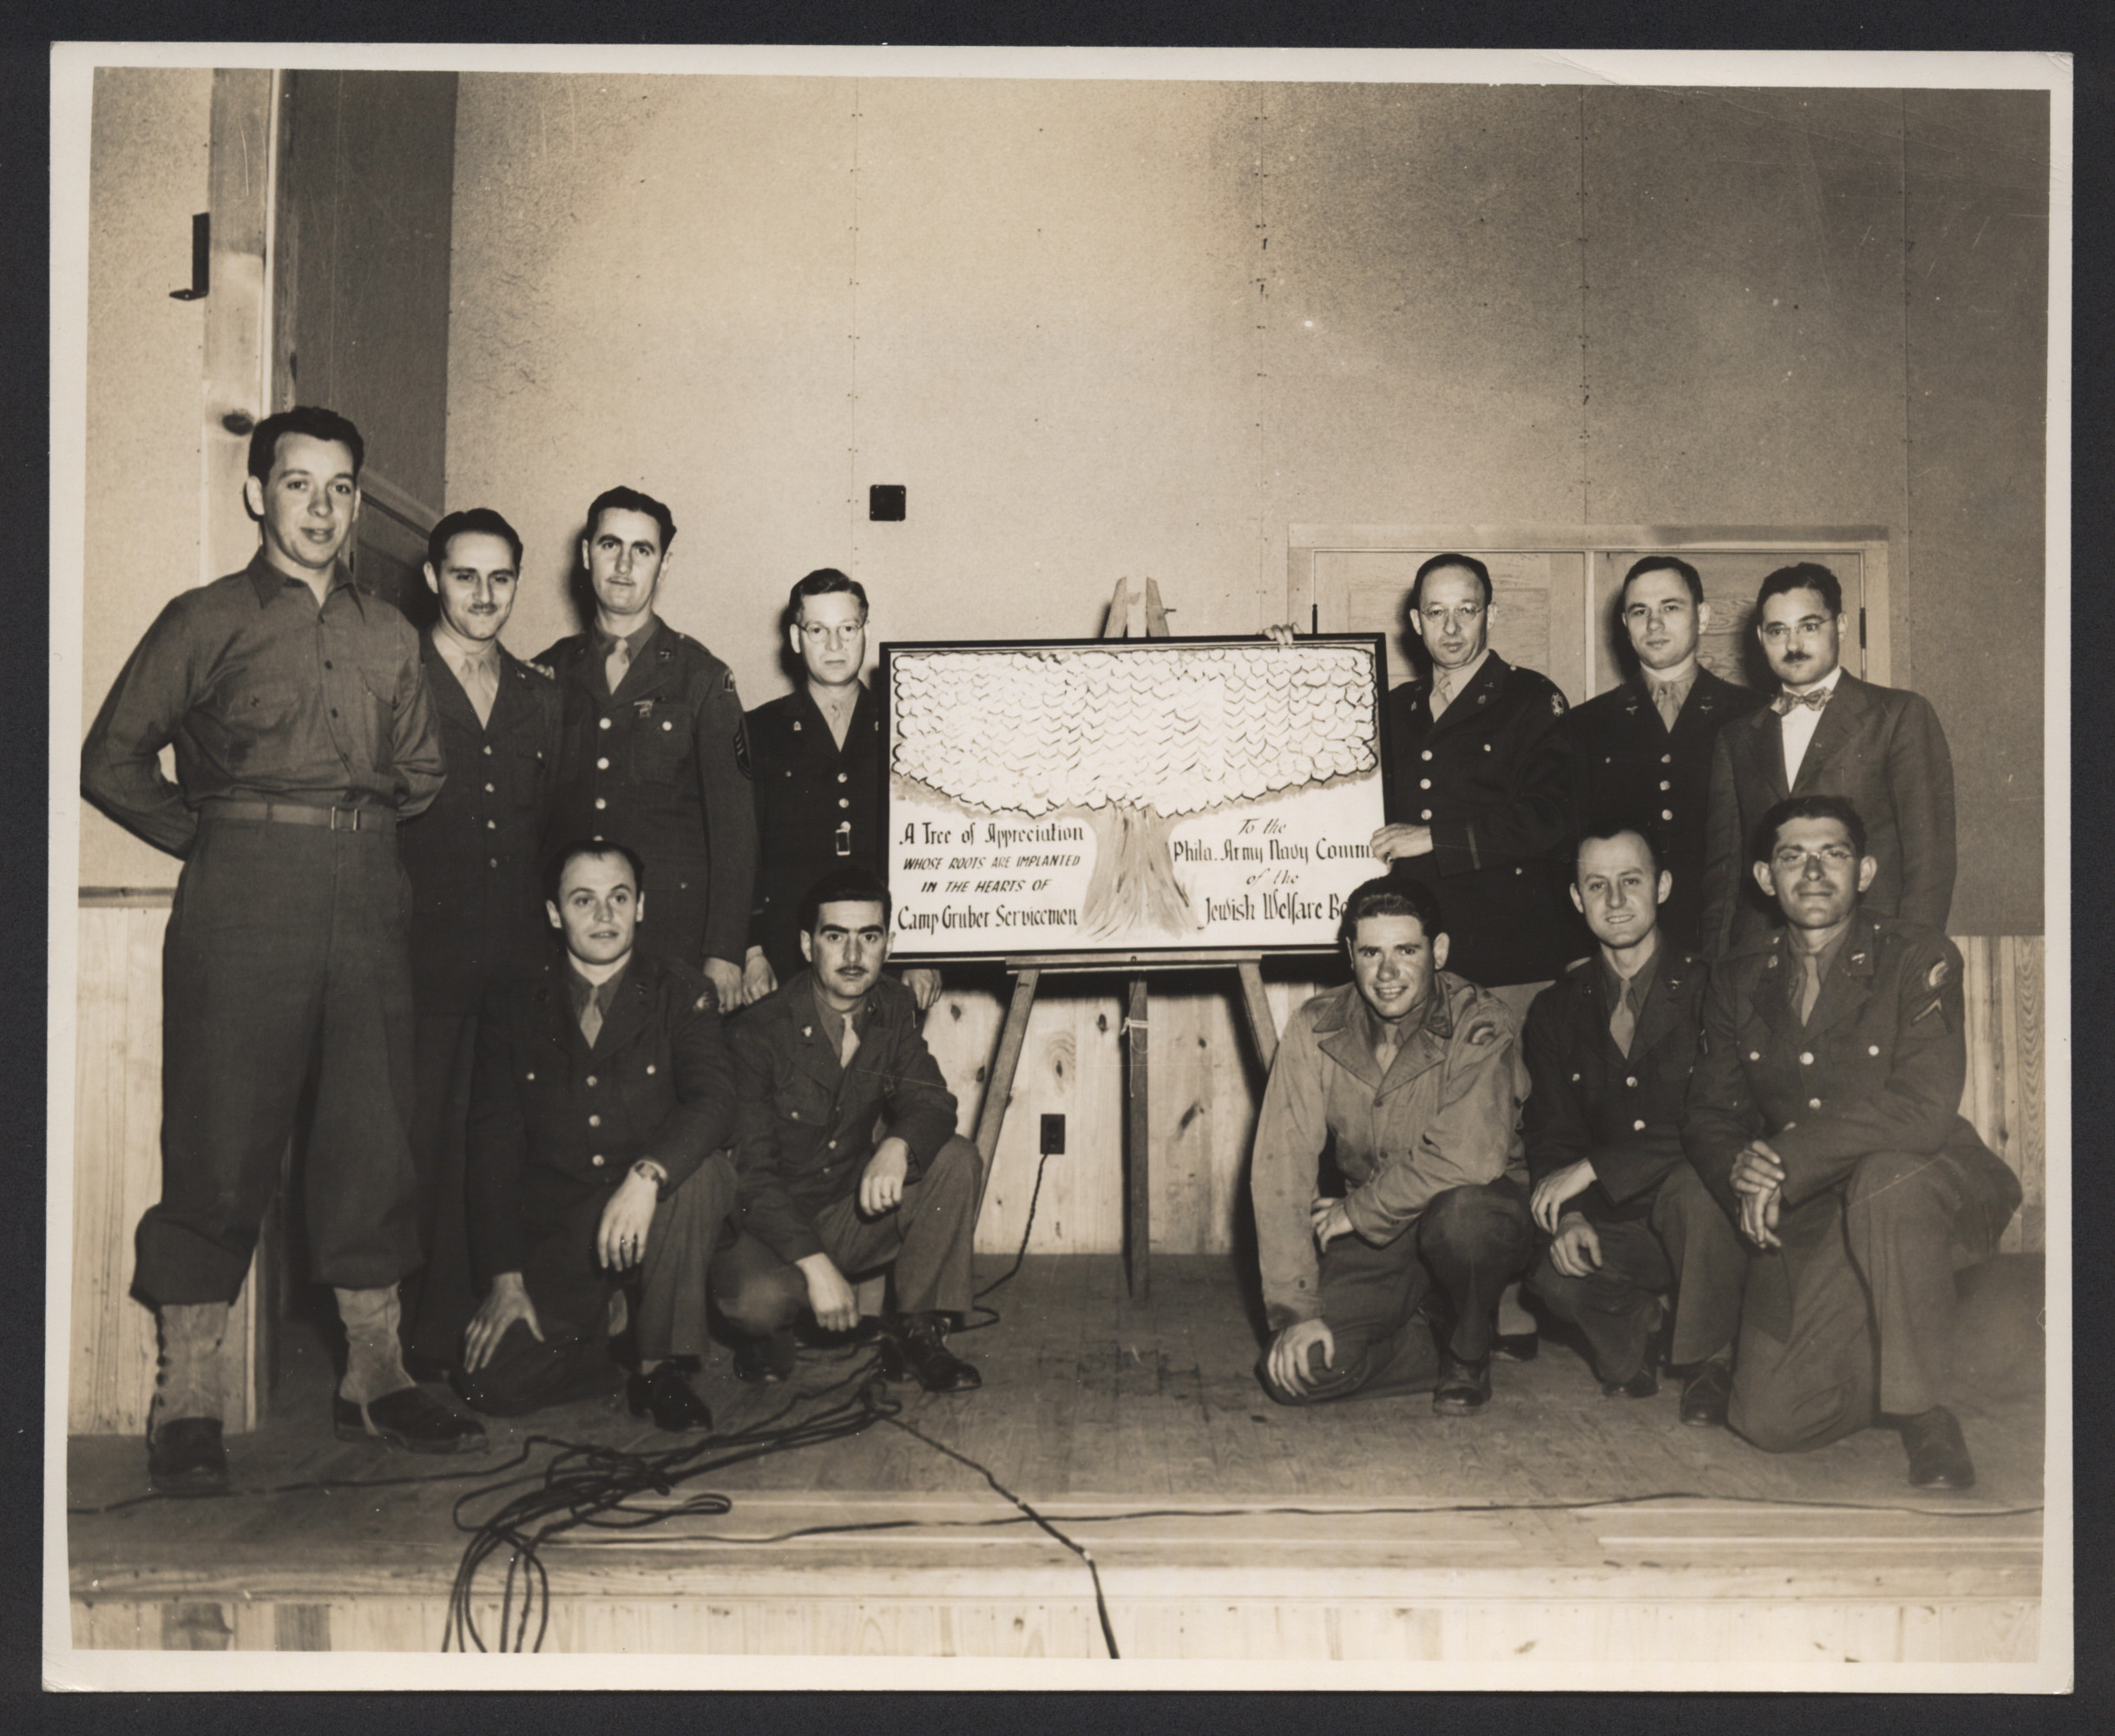 American Jewish servicemen pose around a  certificate of appreciation issued by the Jewish Welfare Board of Philadelphia.